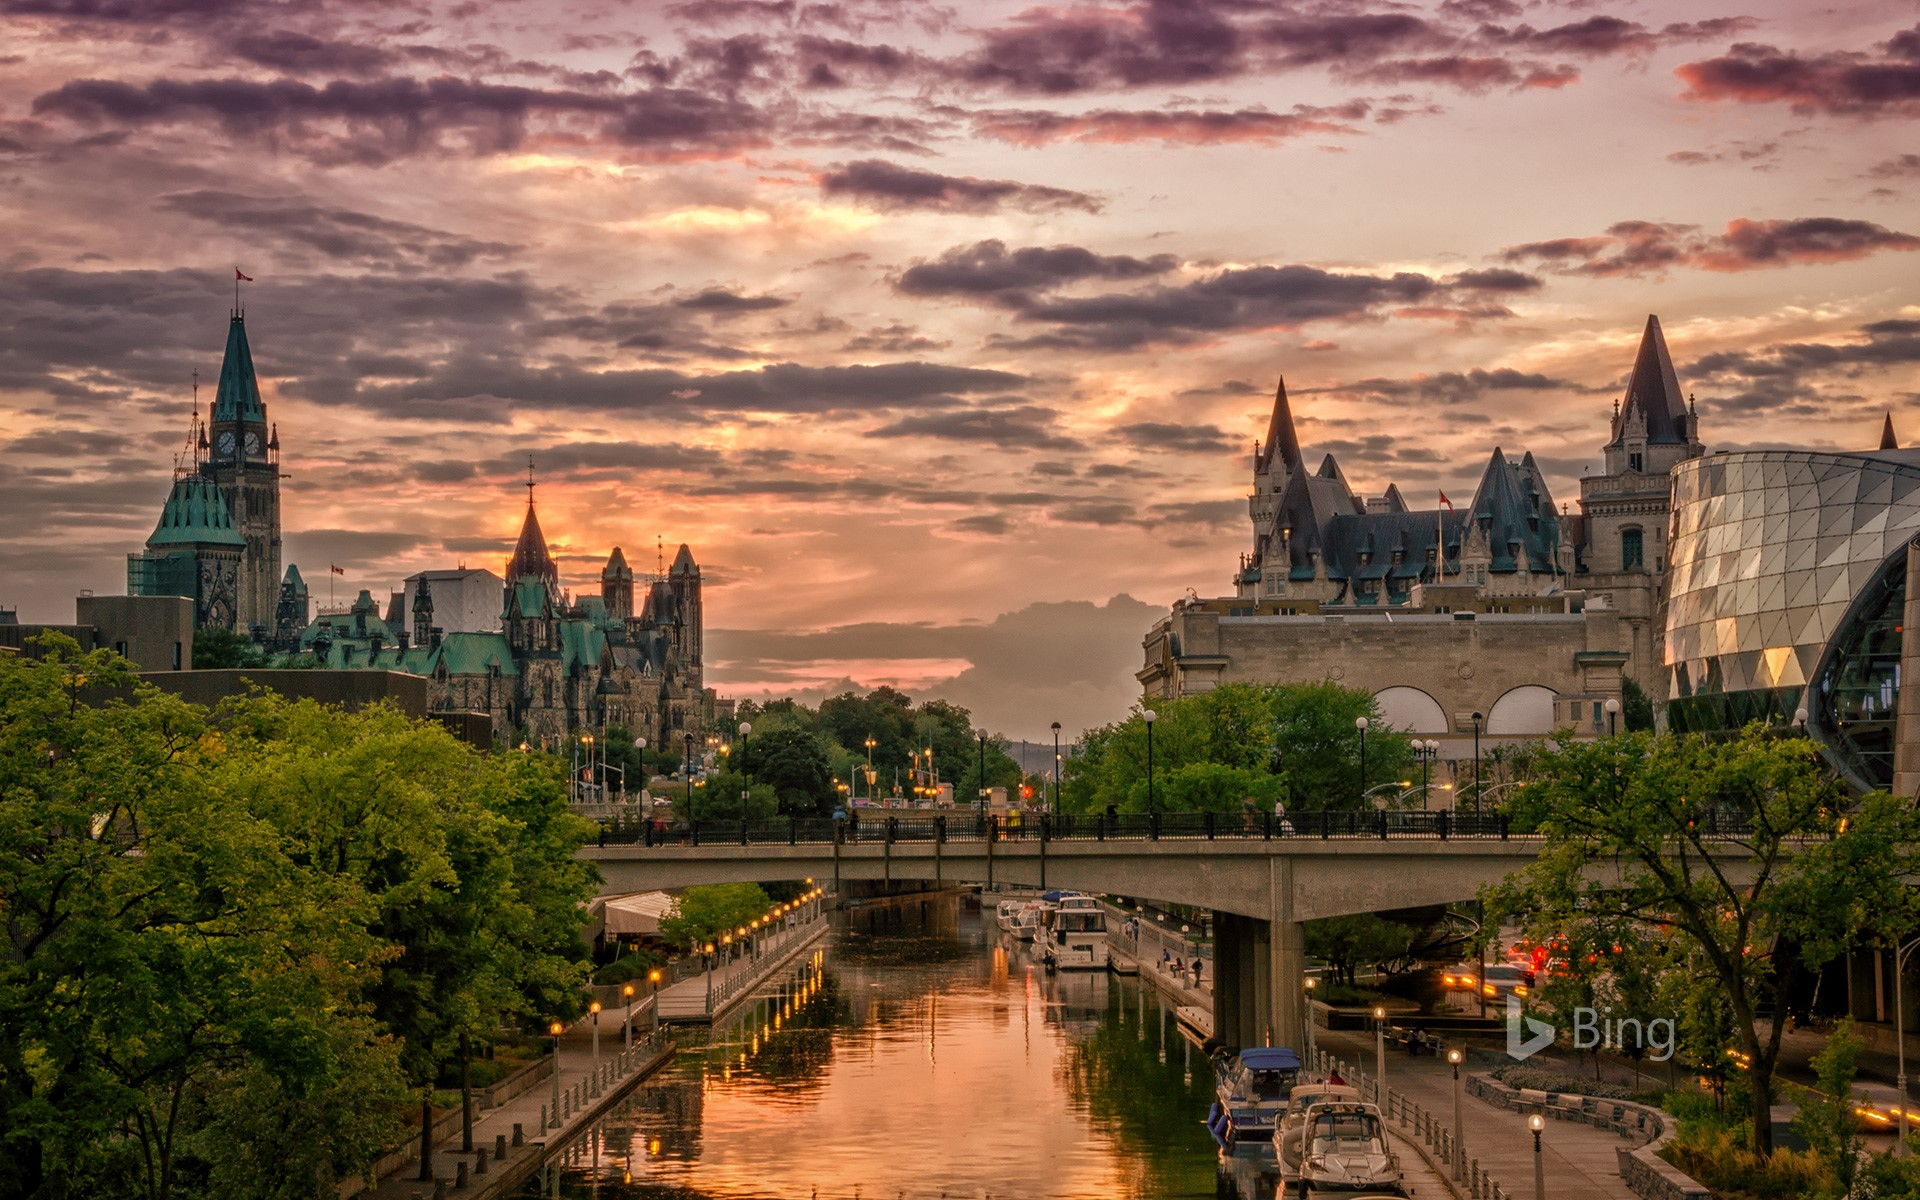 Rideau Canal at sunset with Chateau Laurier in the background, Ottawa, Canada (© Christophe Ledent/Getty Images)